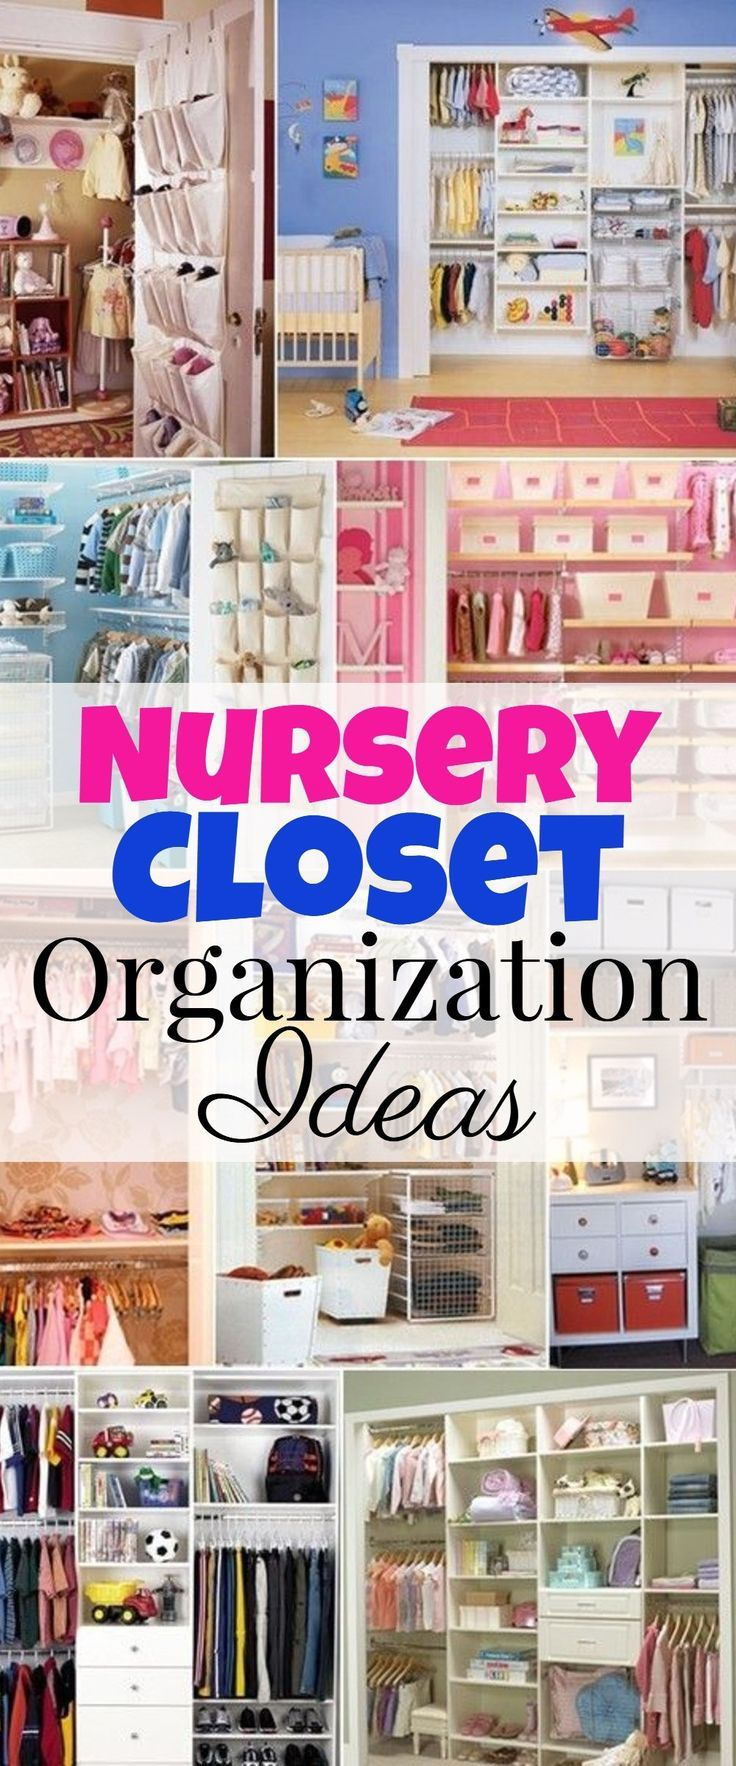 Nursery closet organization tips and ideas - great hacks, DIY ideas, and storage tips for organizing the baby room closet.  Great ideas for big and small closets.